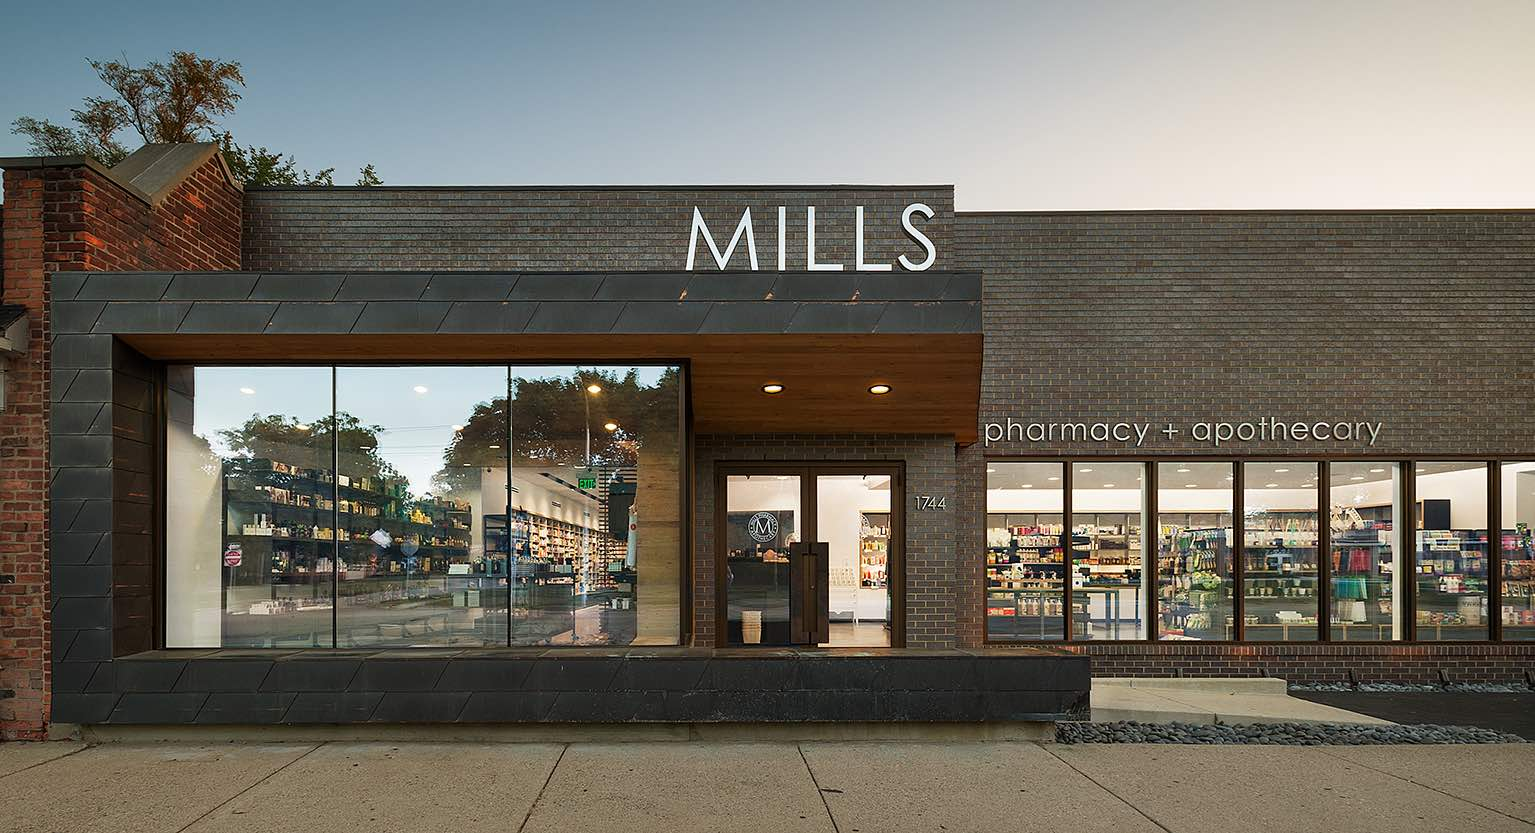 Mills Pharmacy + Apothecary Transports European Pharmacy Sophistication And Upscale Skincare To The Midwest